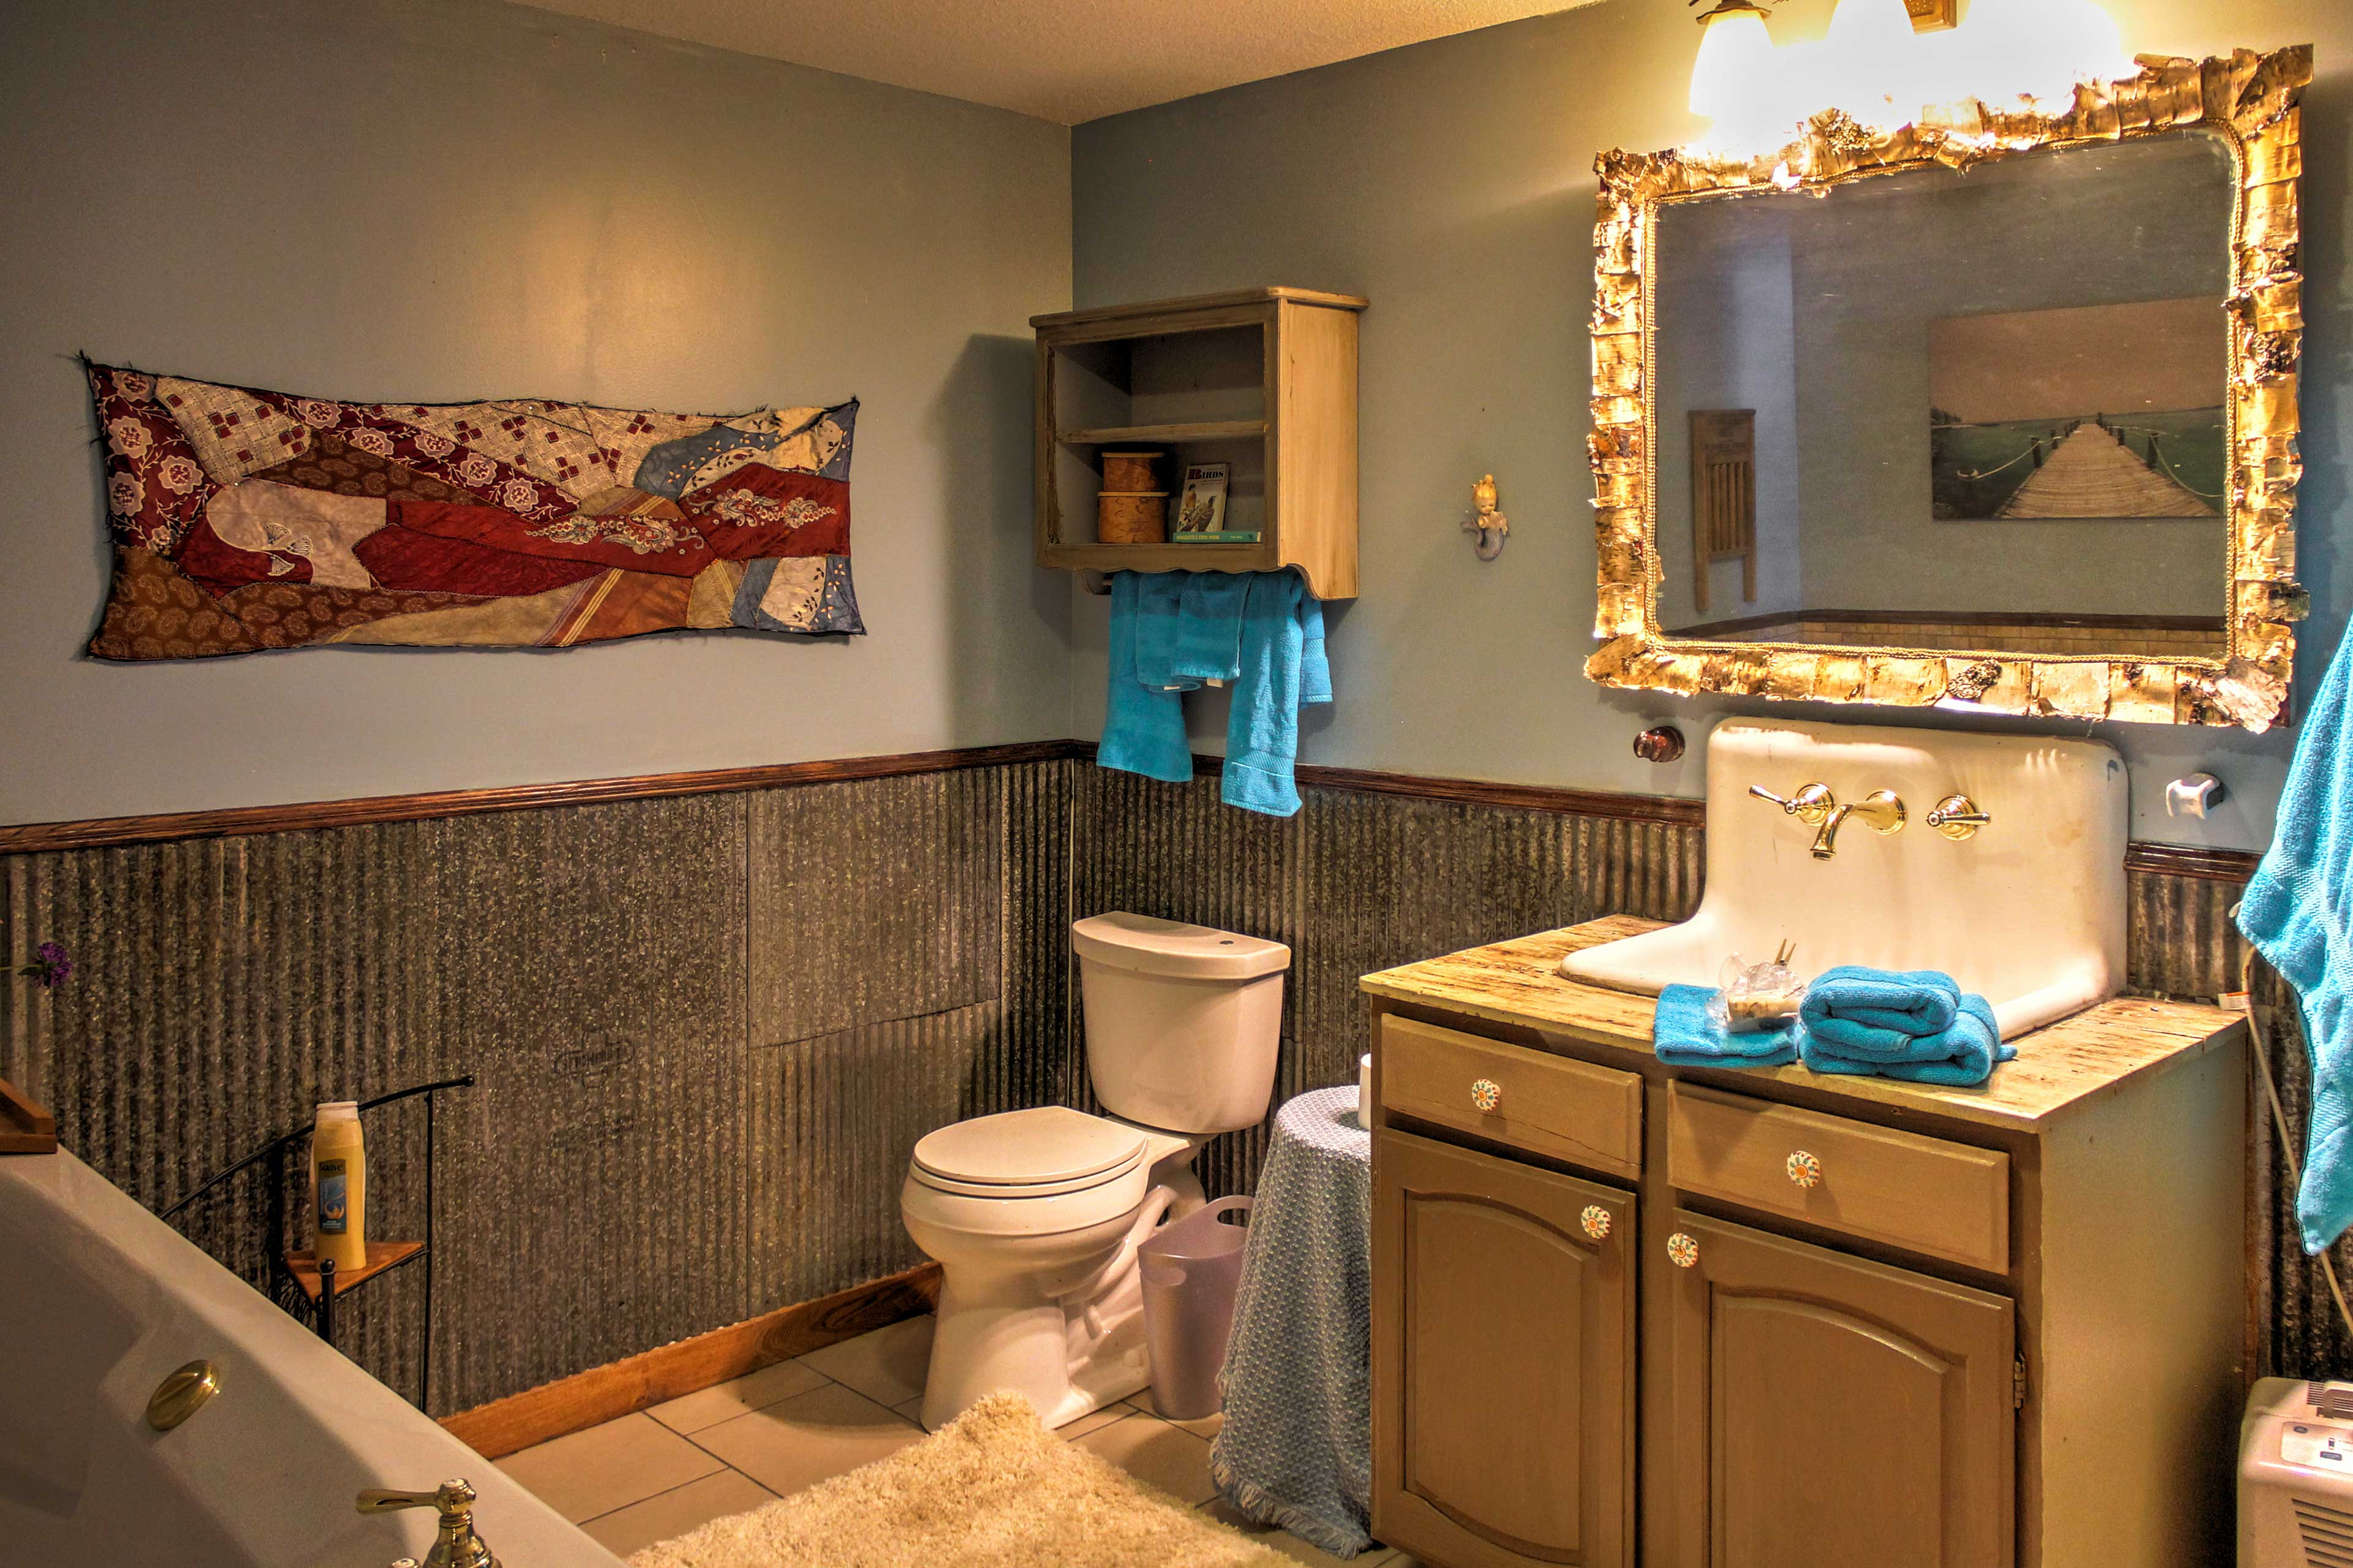 This full bathroom comes complete with a soaking tub and walk-in shower.